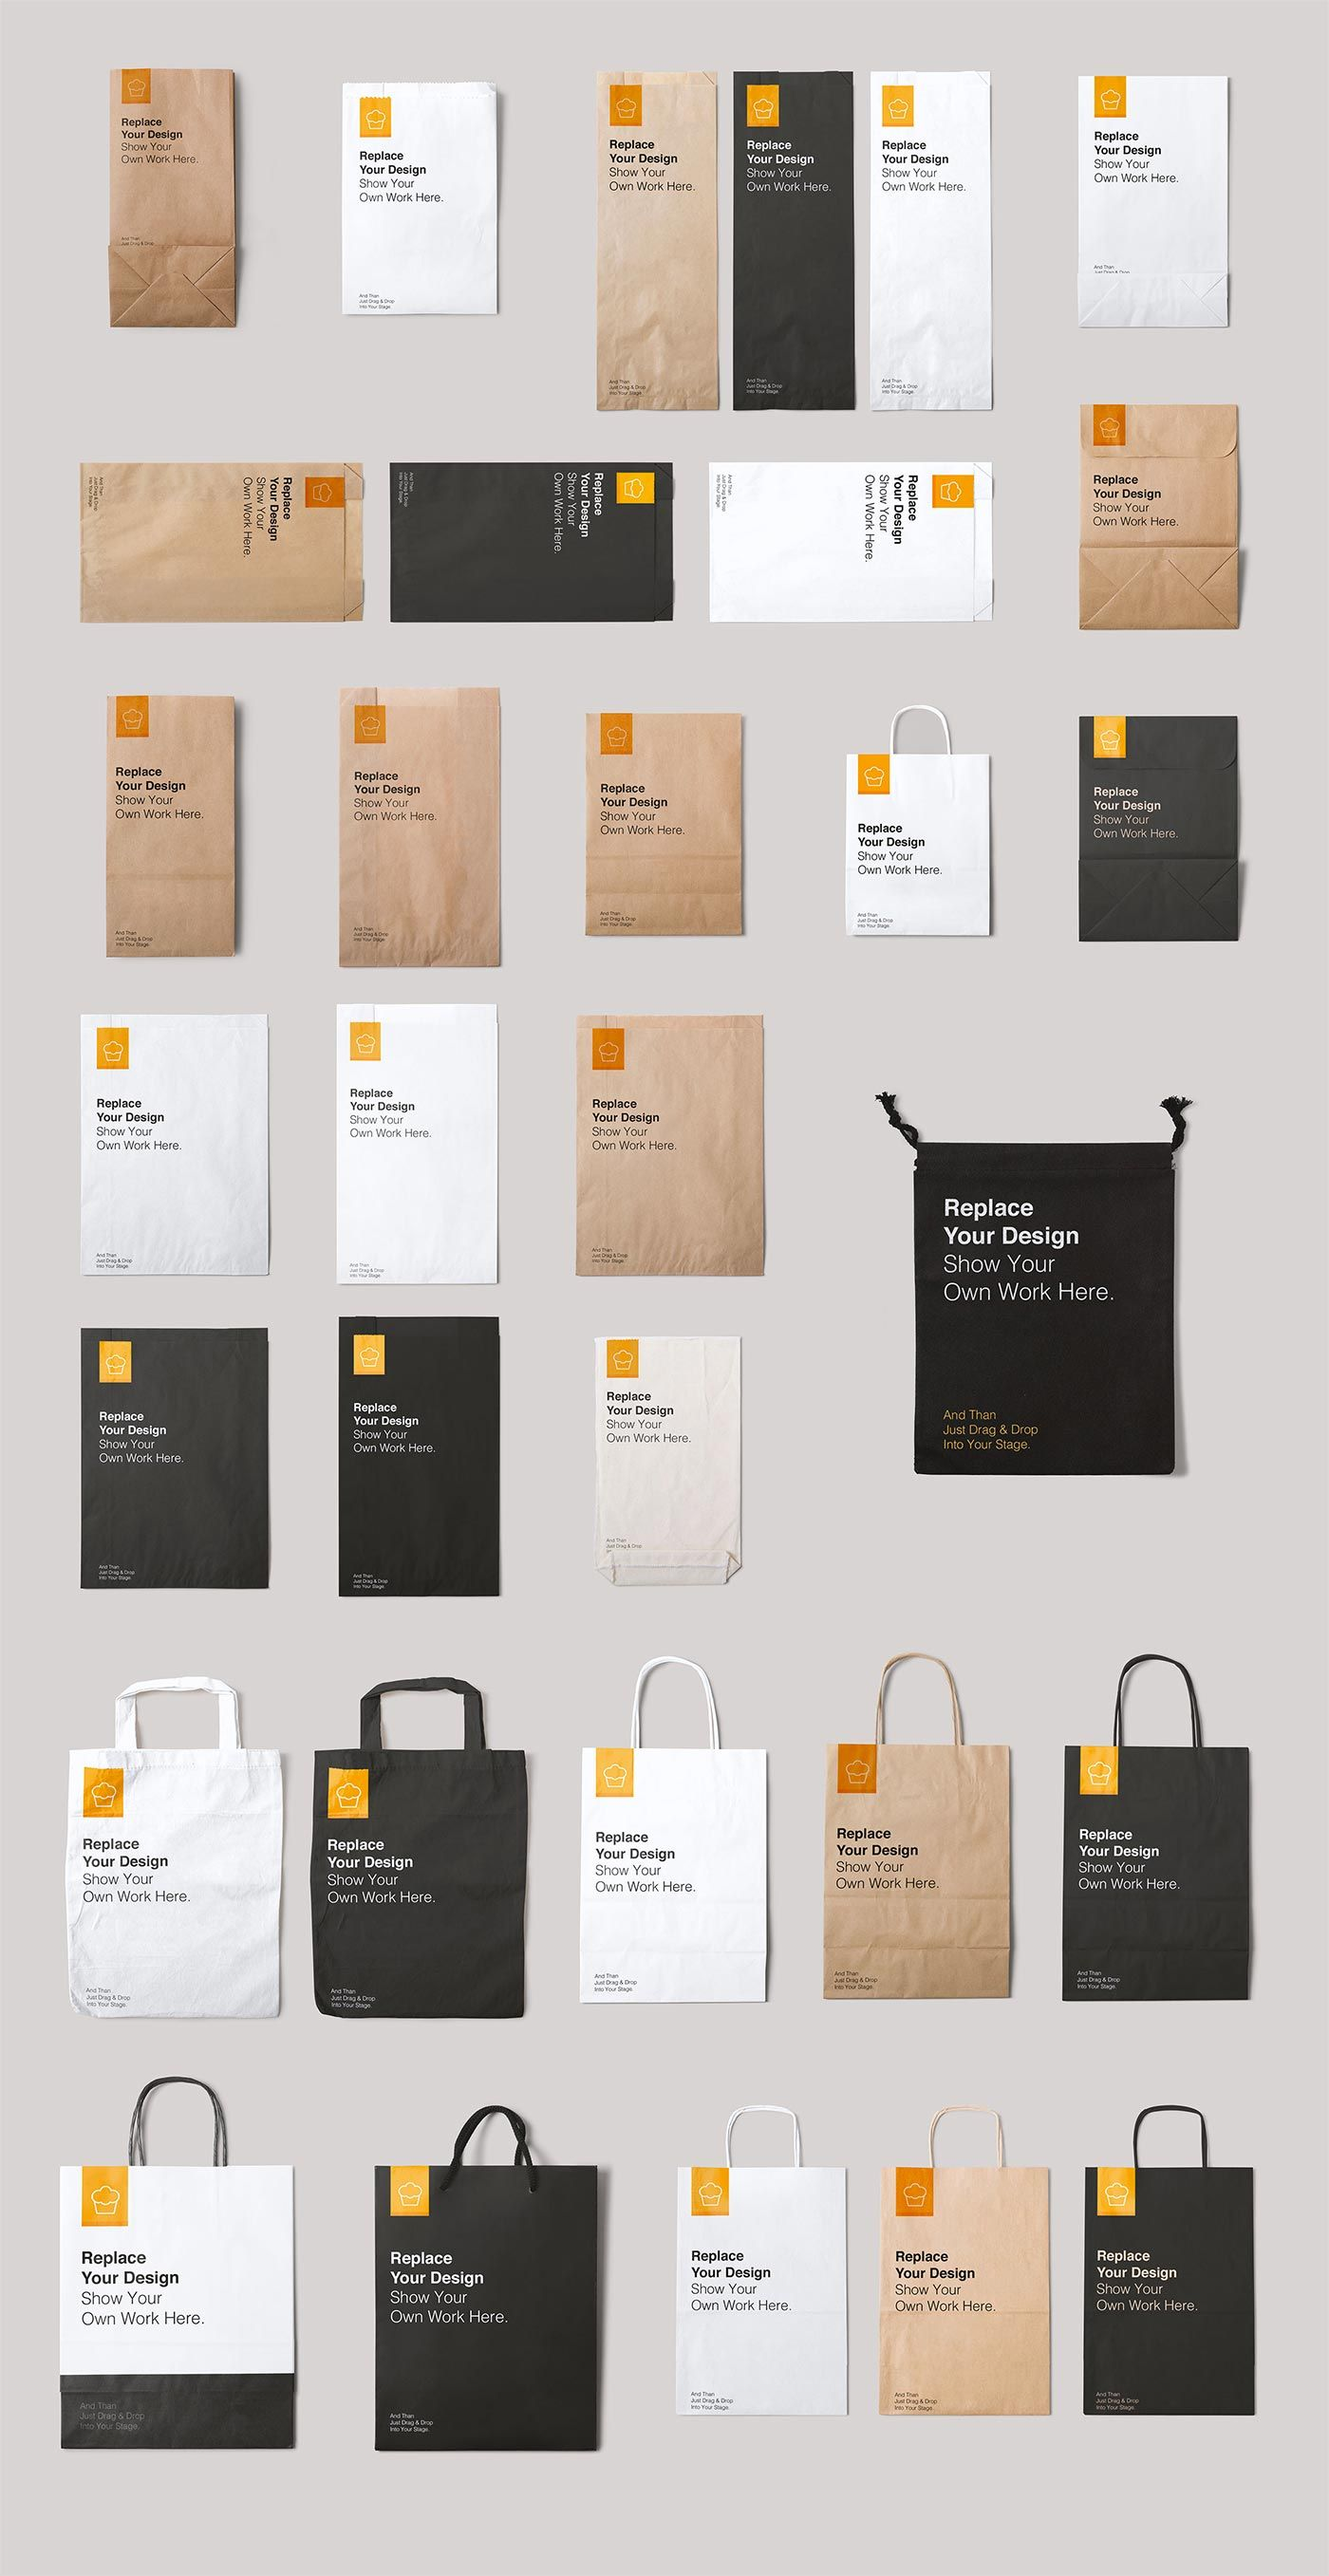 Download Mockup Zone Yellowimages